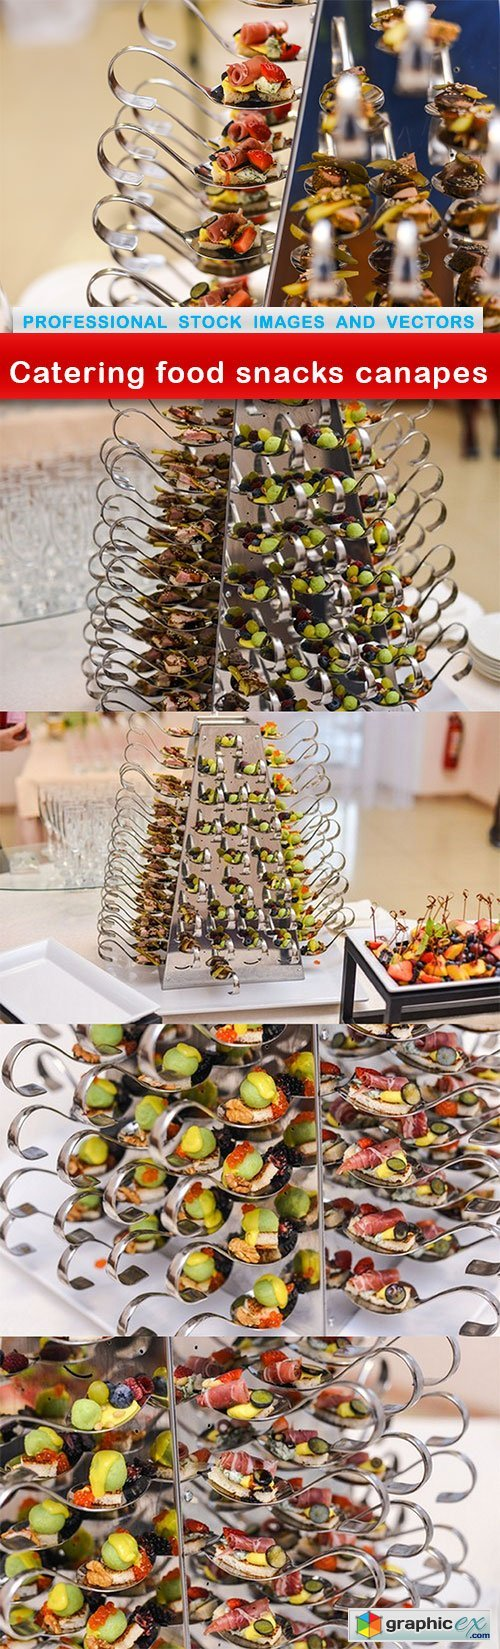 Catering food snacks canapes - 5 UHQ JPEG